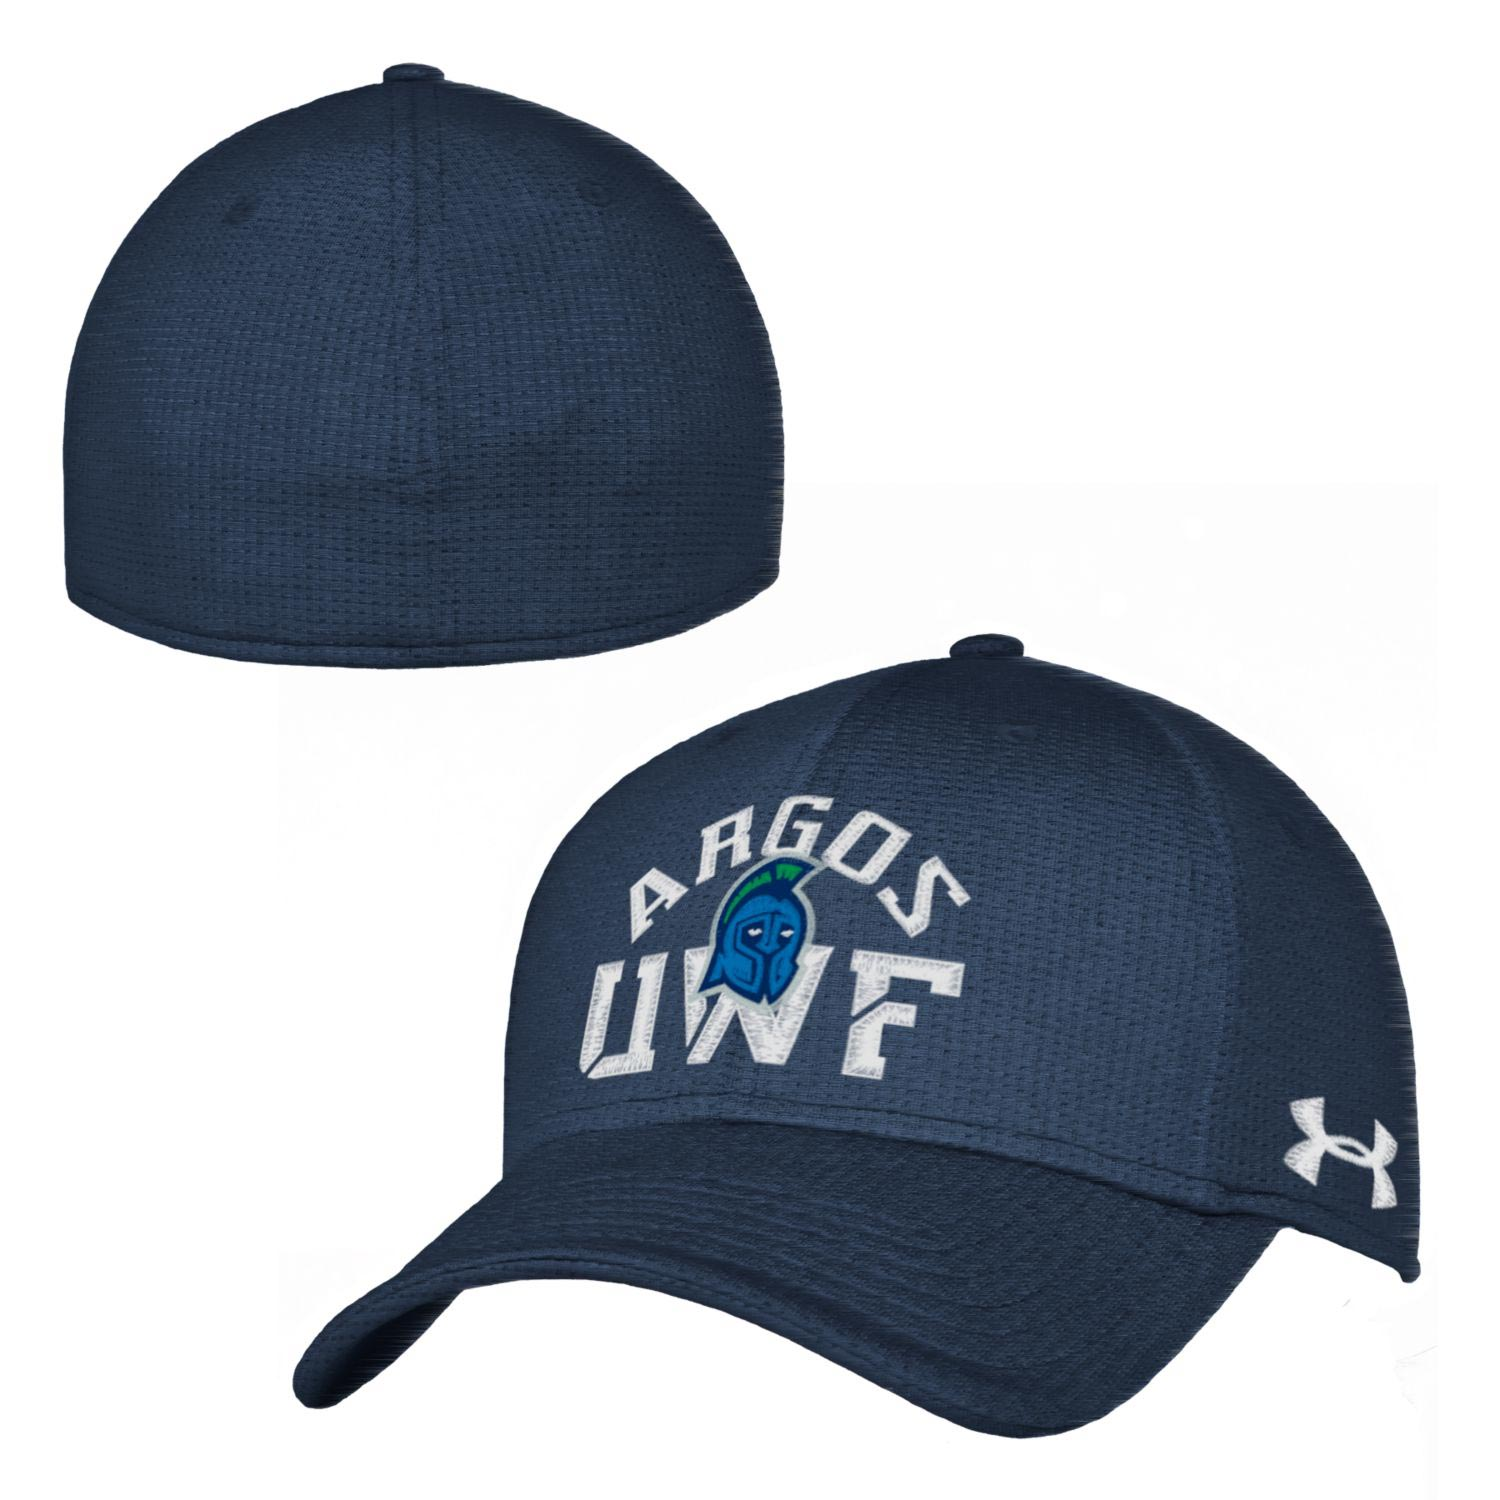 MEN & WOMEN'S CLASSIC FIT UA HAT